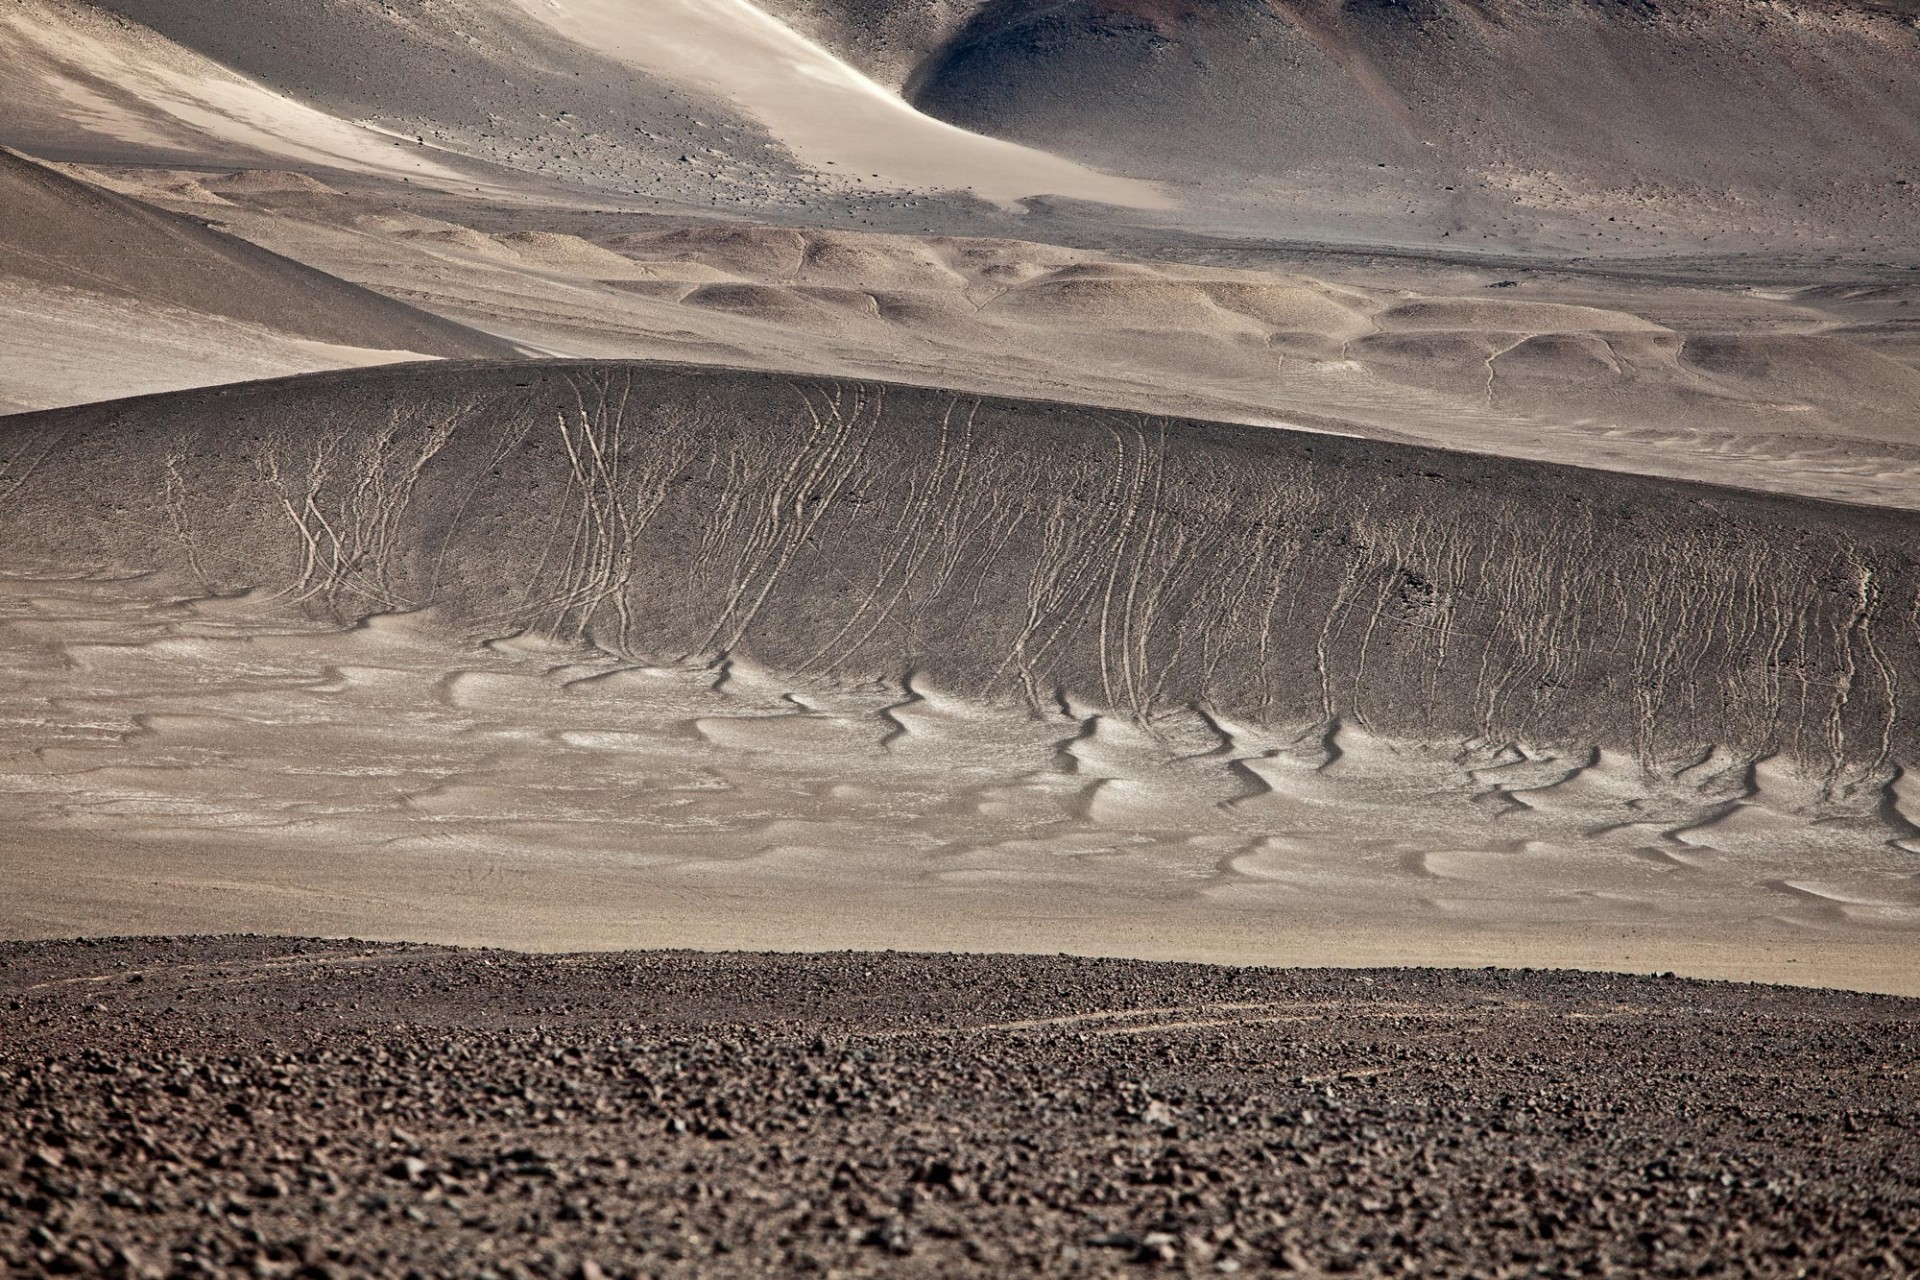 La Puna (high desert) in  Argentina